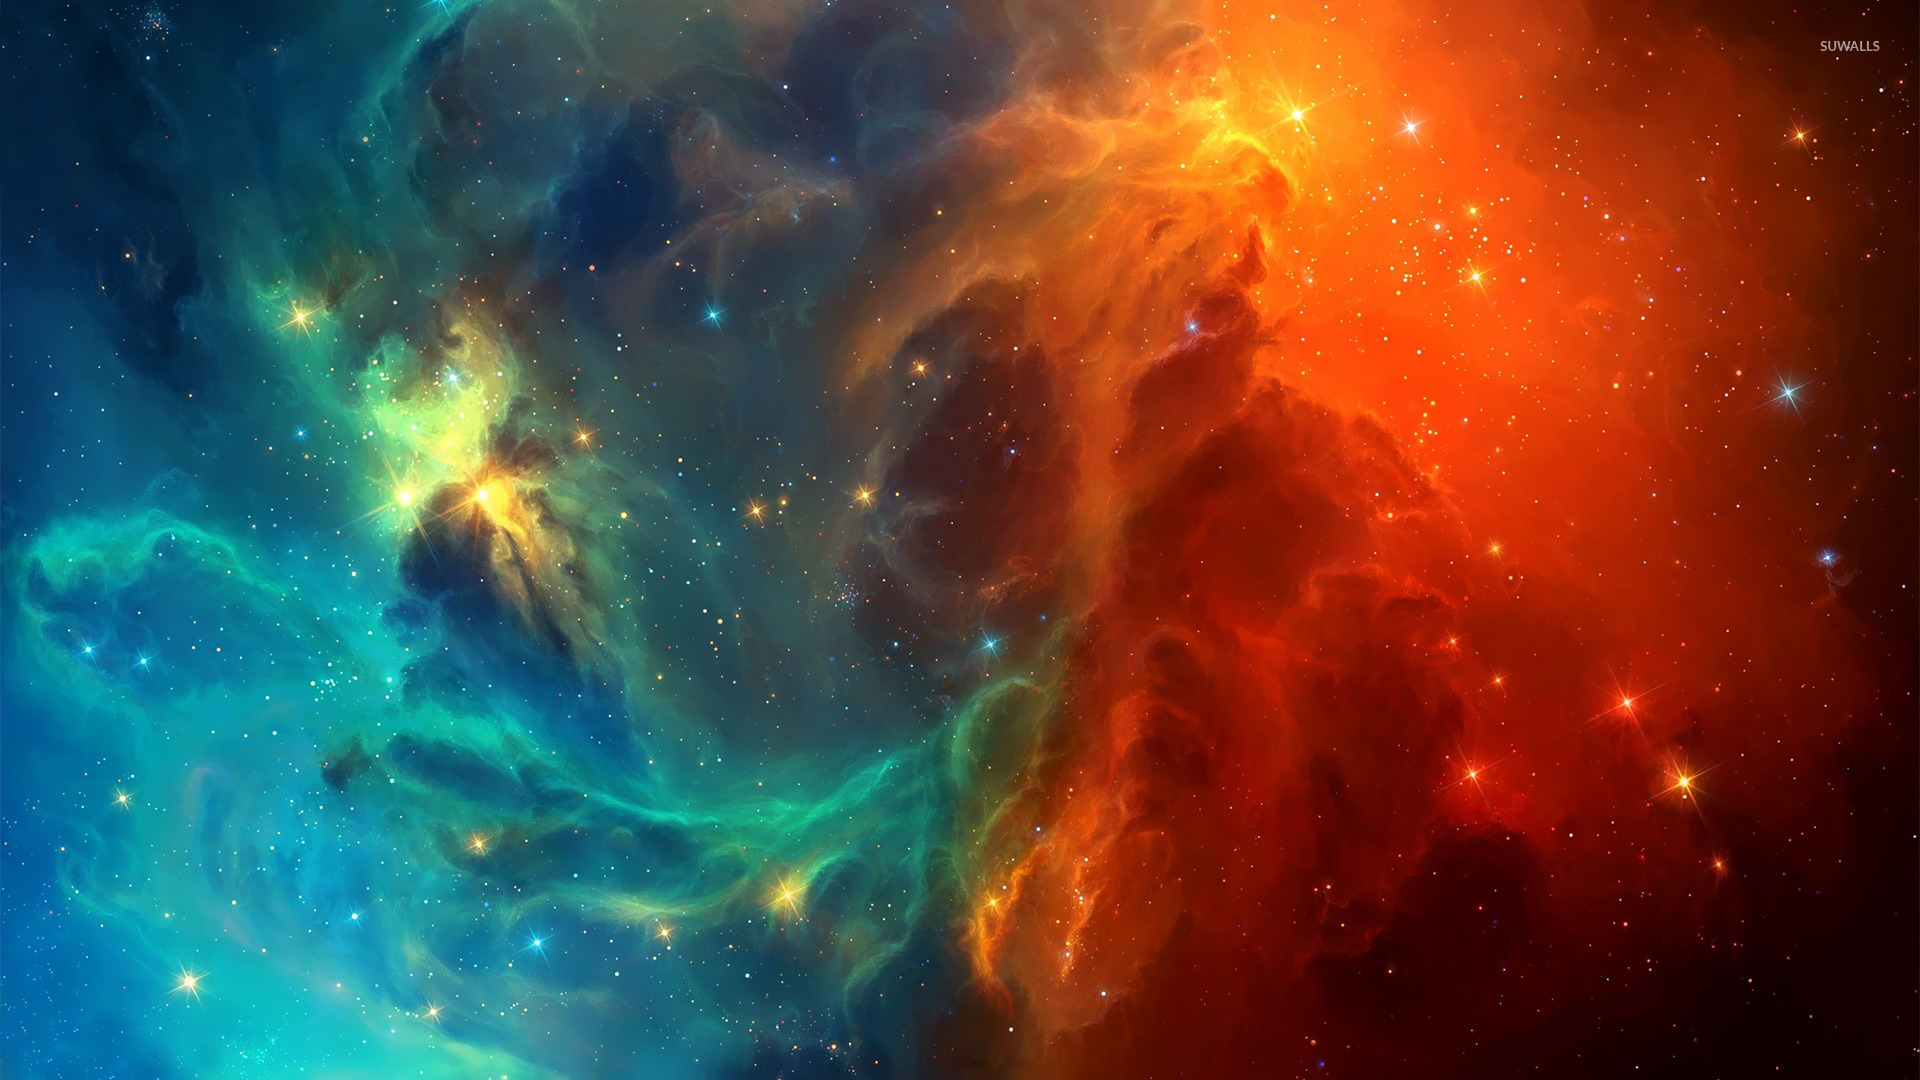 colorful nebula iphone wallpaper - photo #24